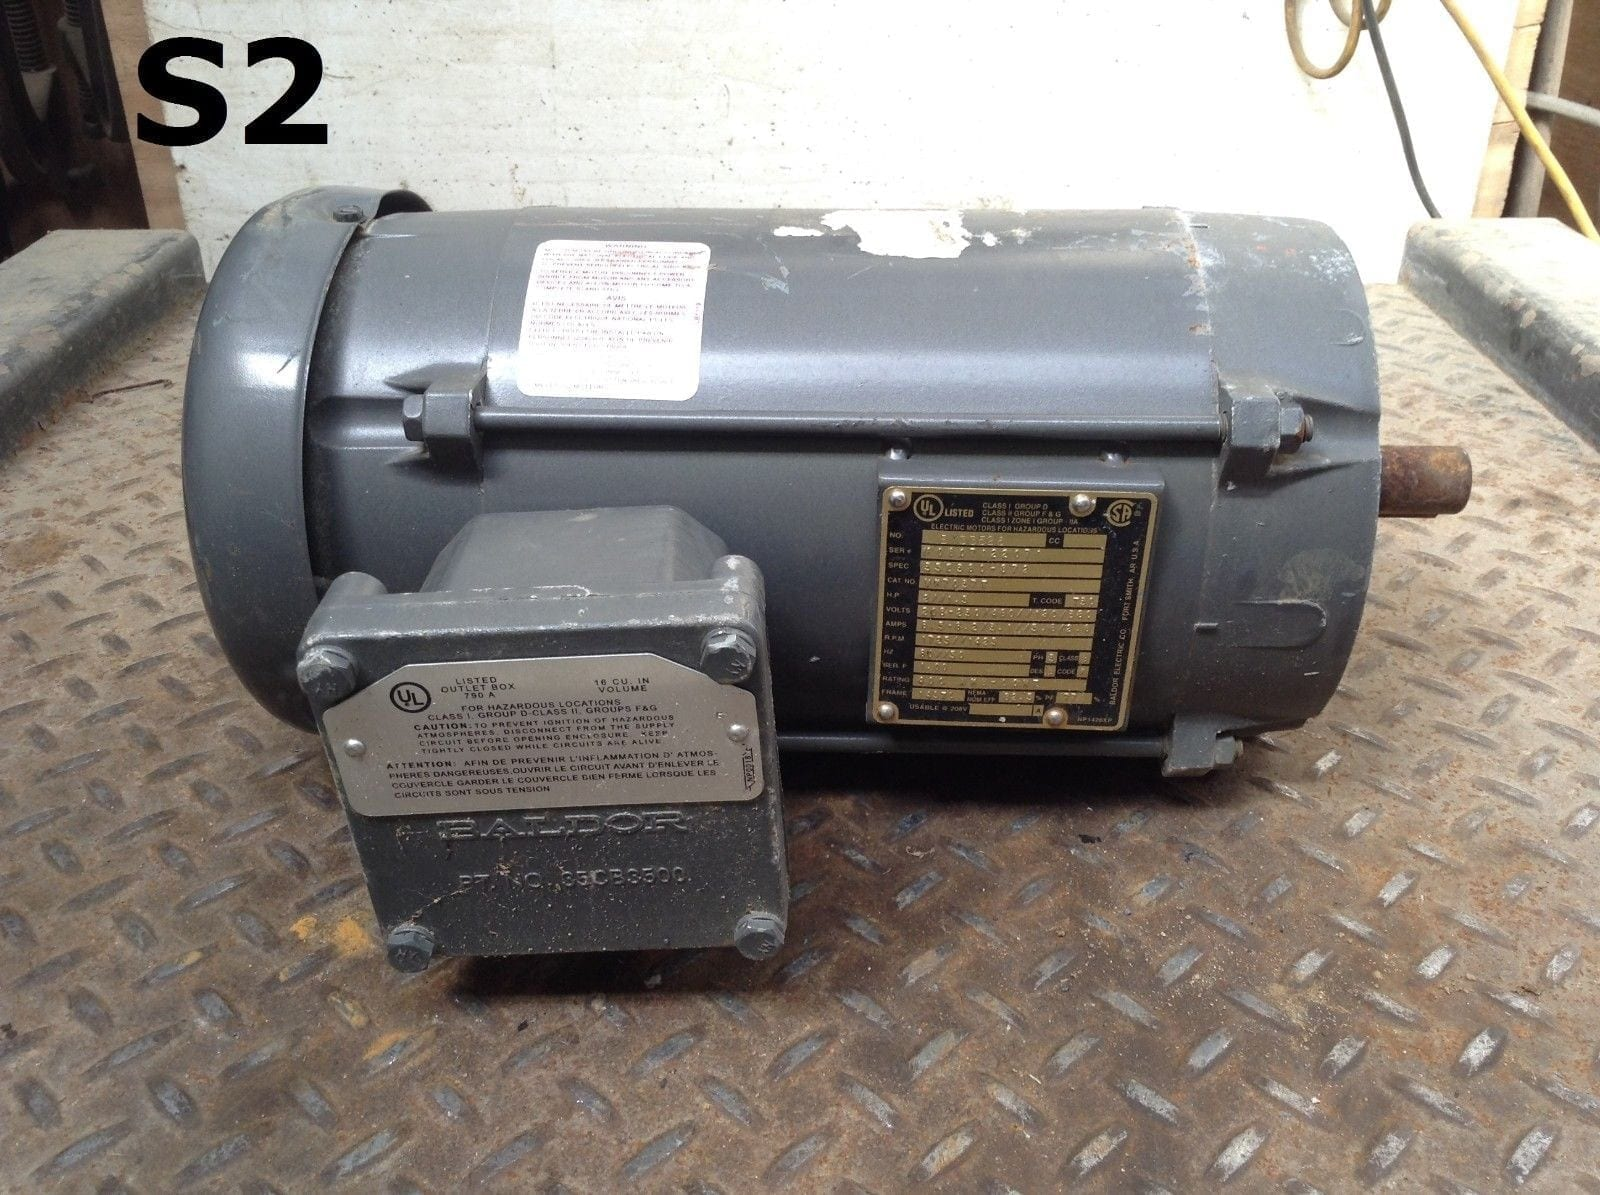 Baldor Vh7037t Explosion Proof 2 15hp Electric Motor 1725 1425rpm Motors